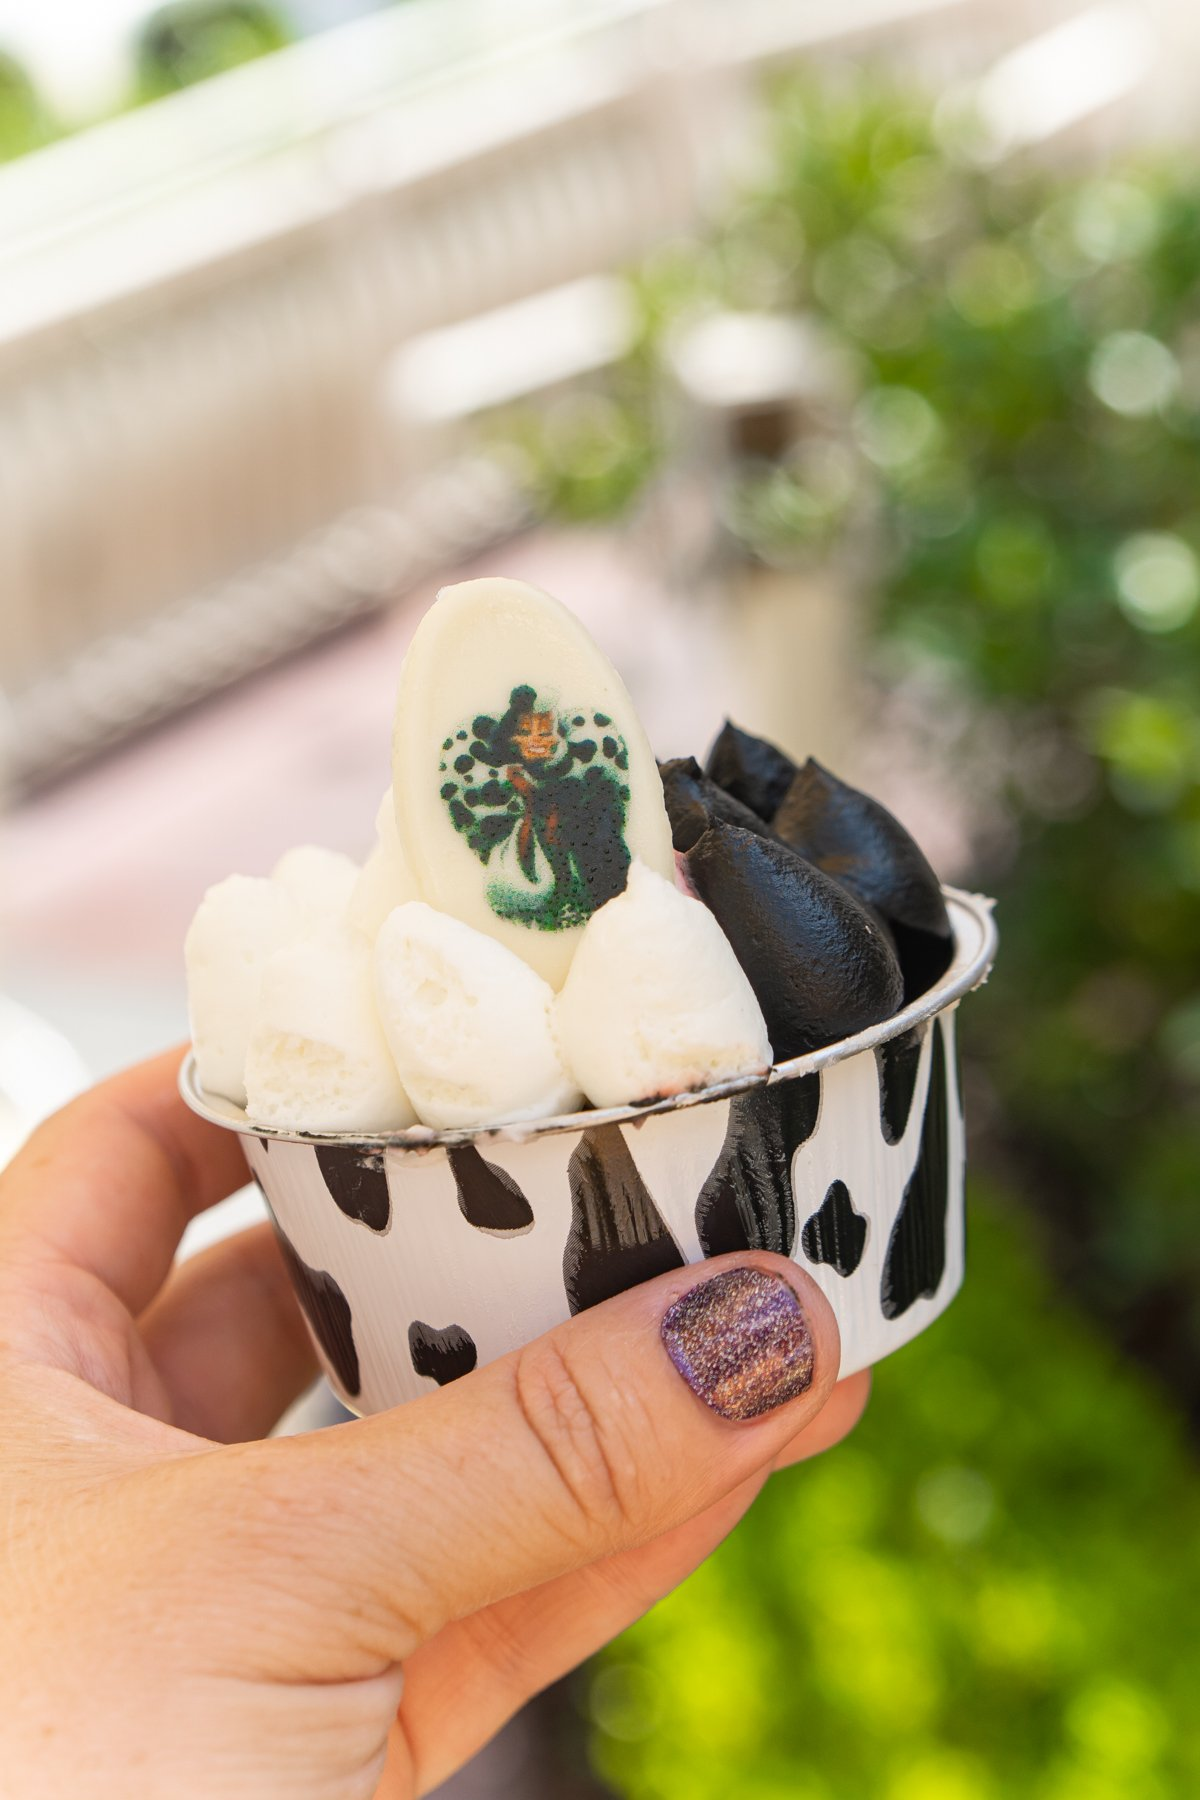 hand holding a cup with white and black frosting